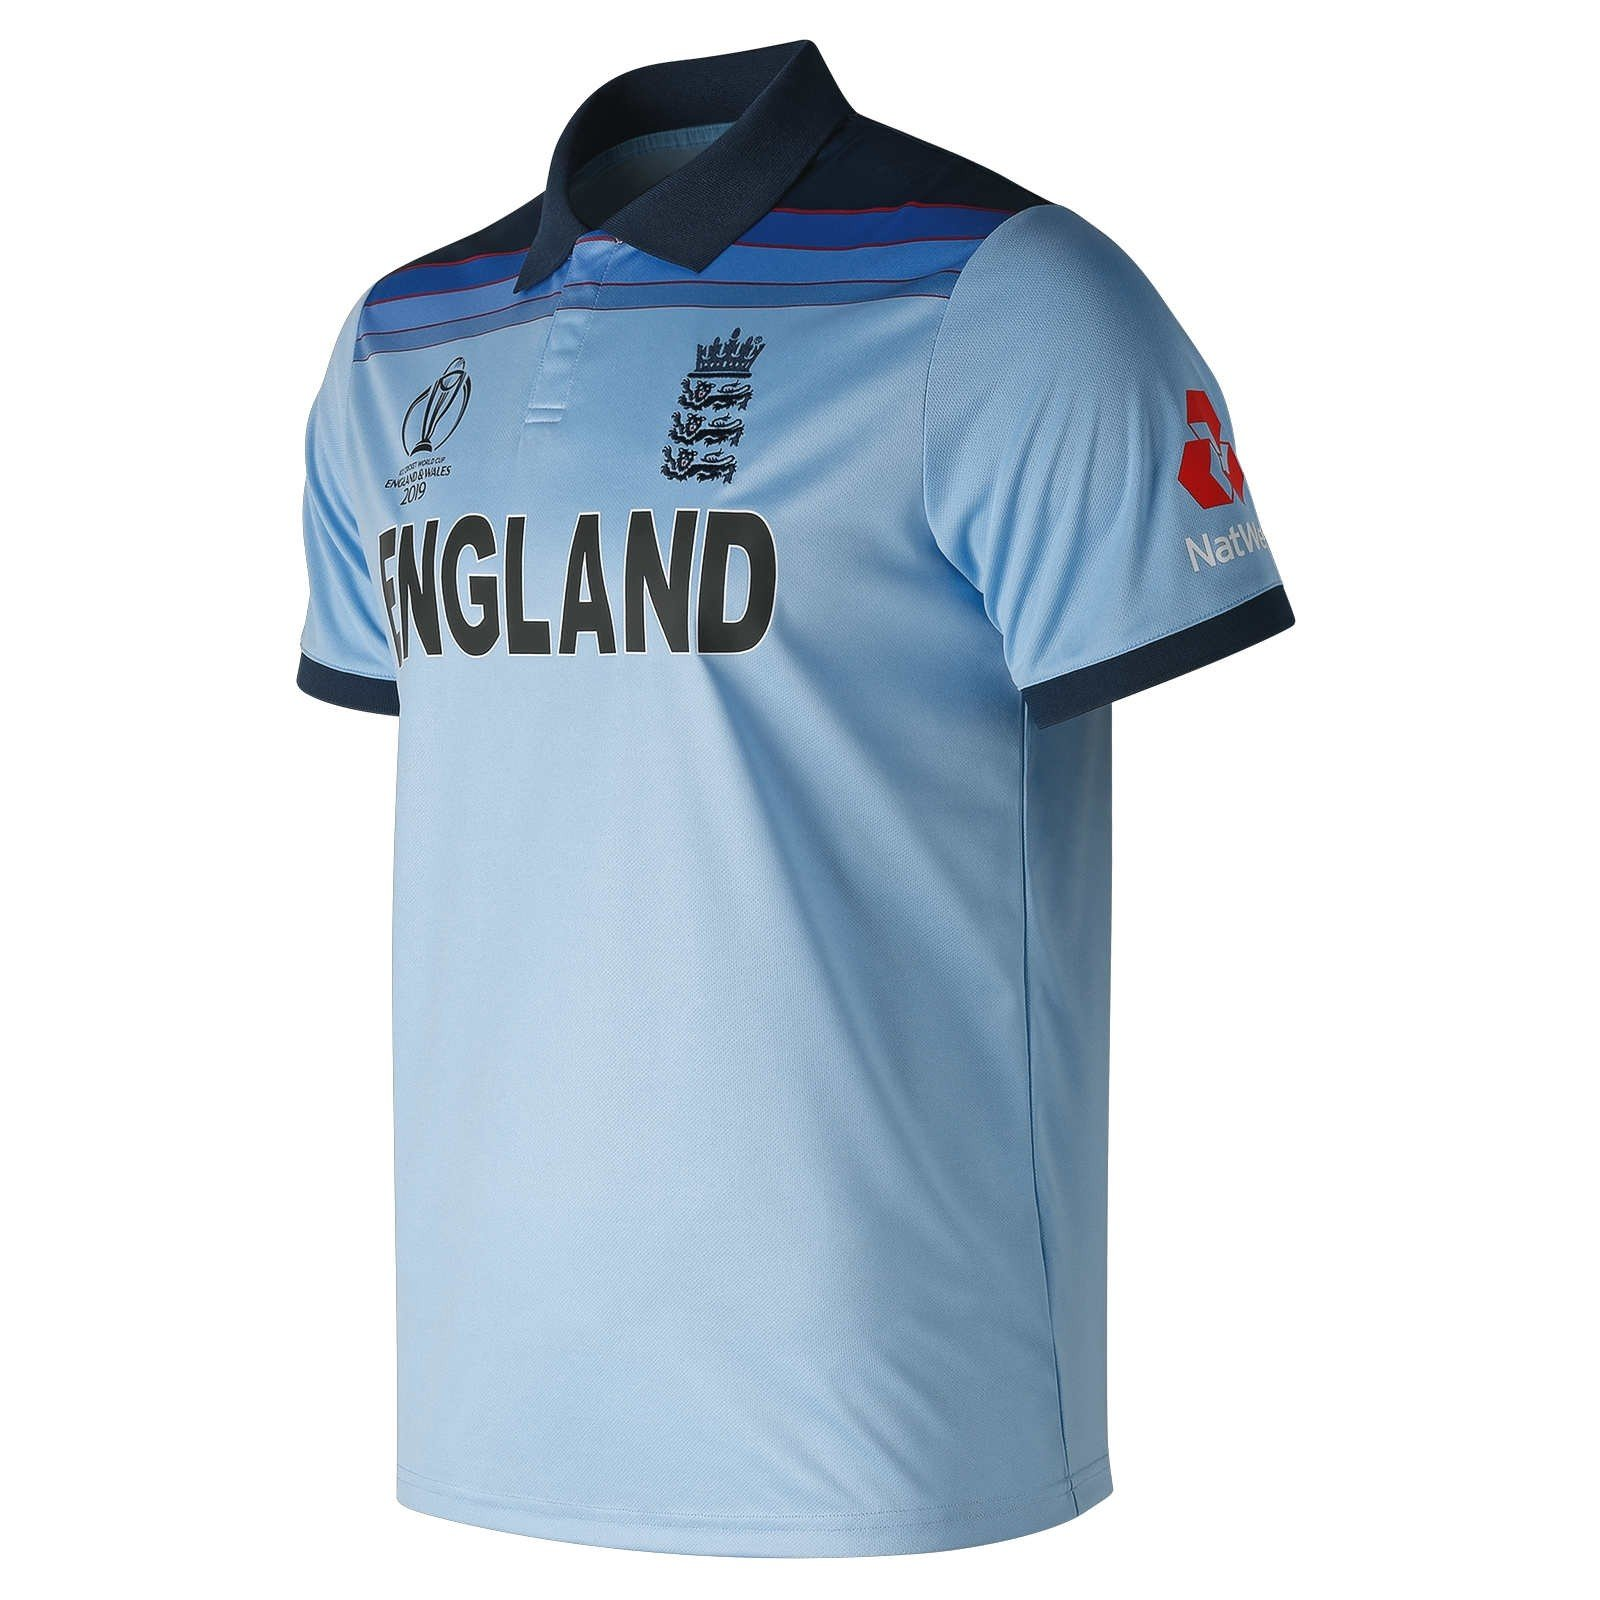 new style c322a 74311 2019 New Balance England Cricket World Cup Winners ODI Replica Mens